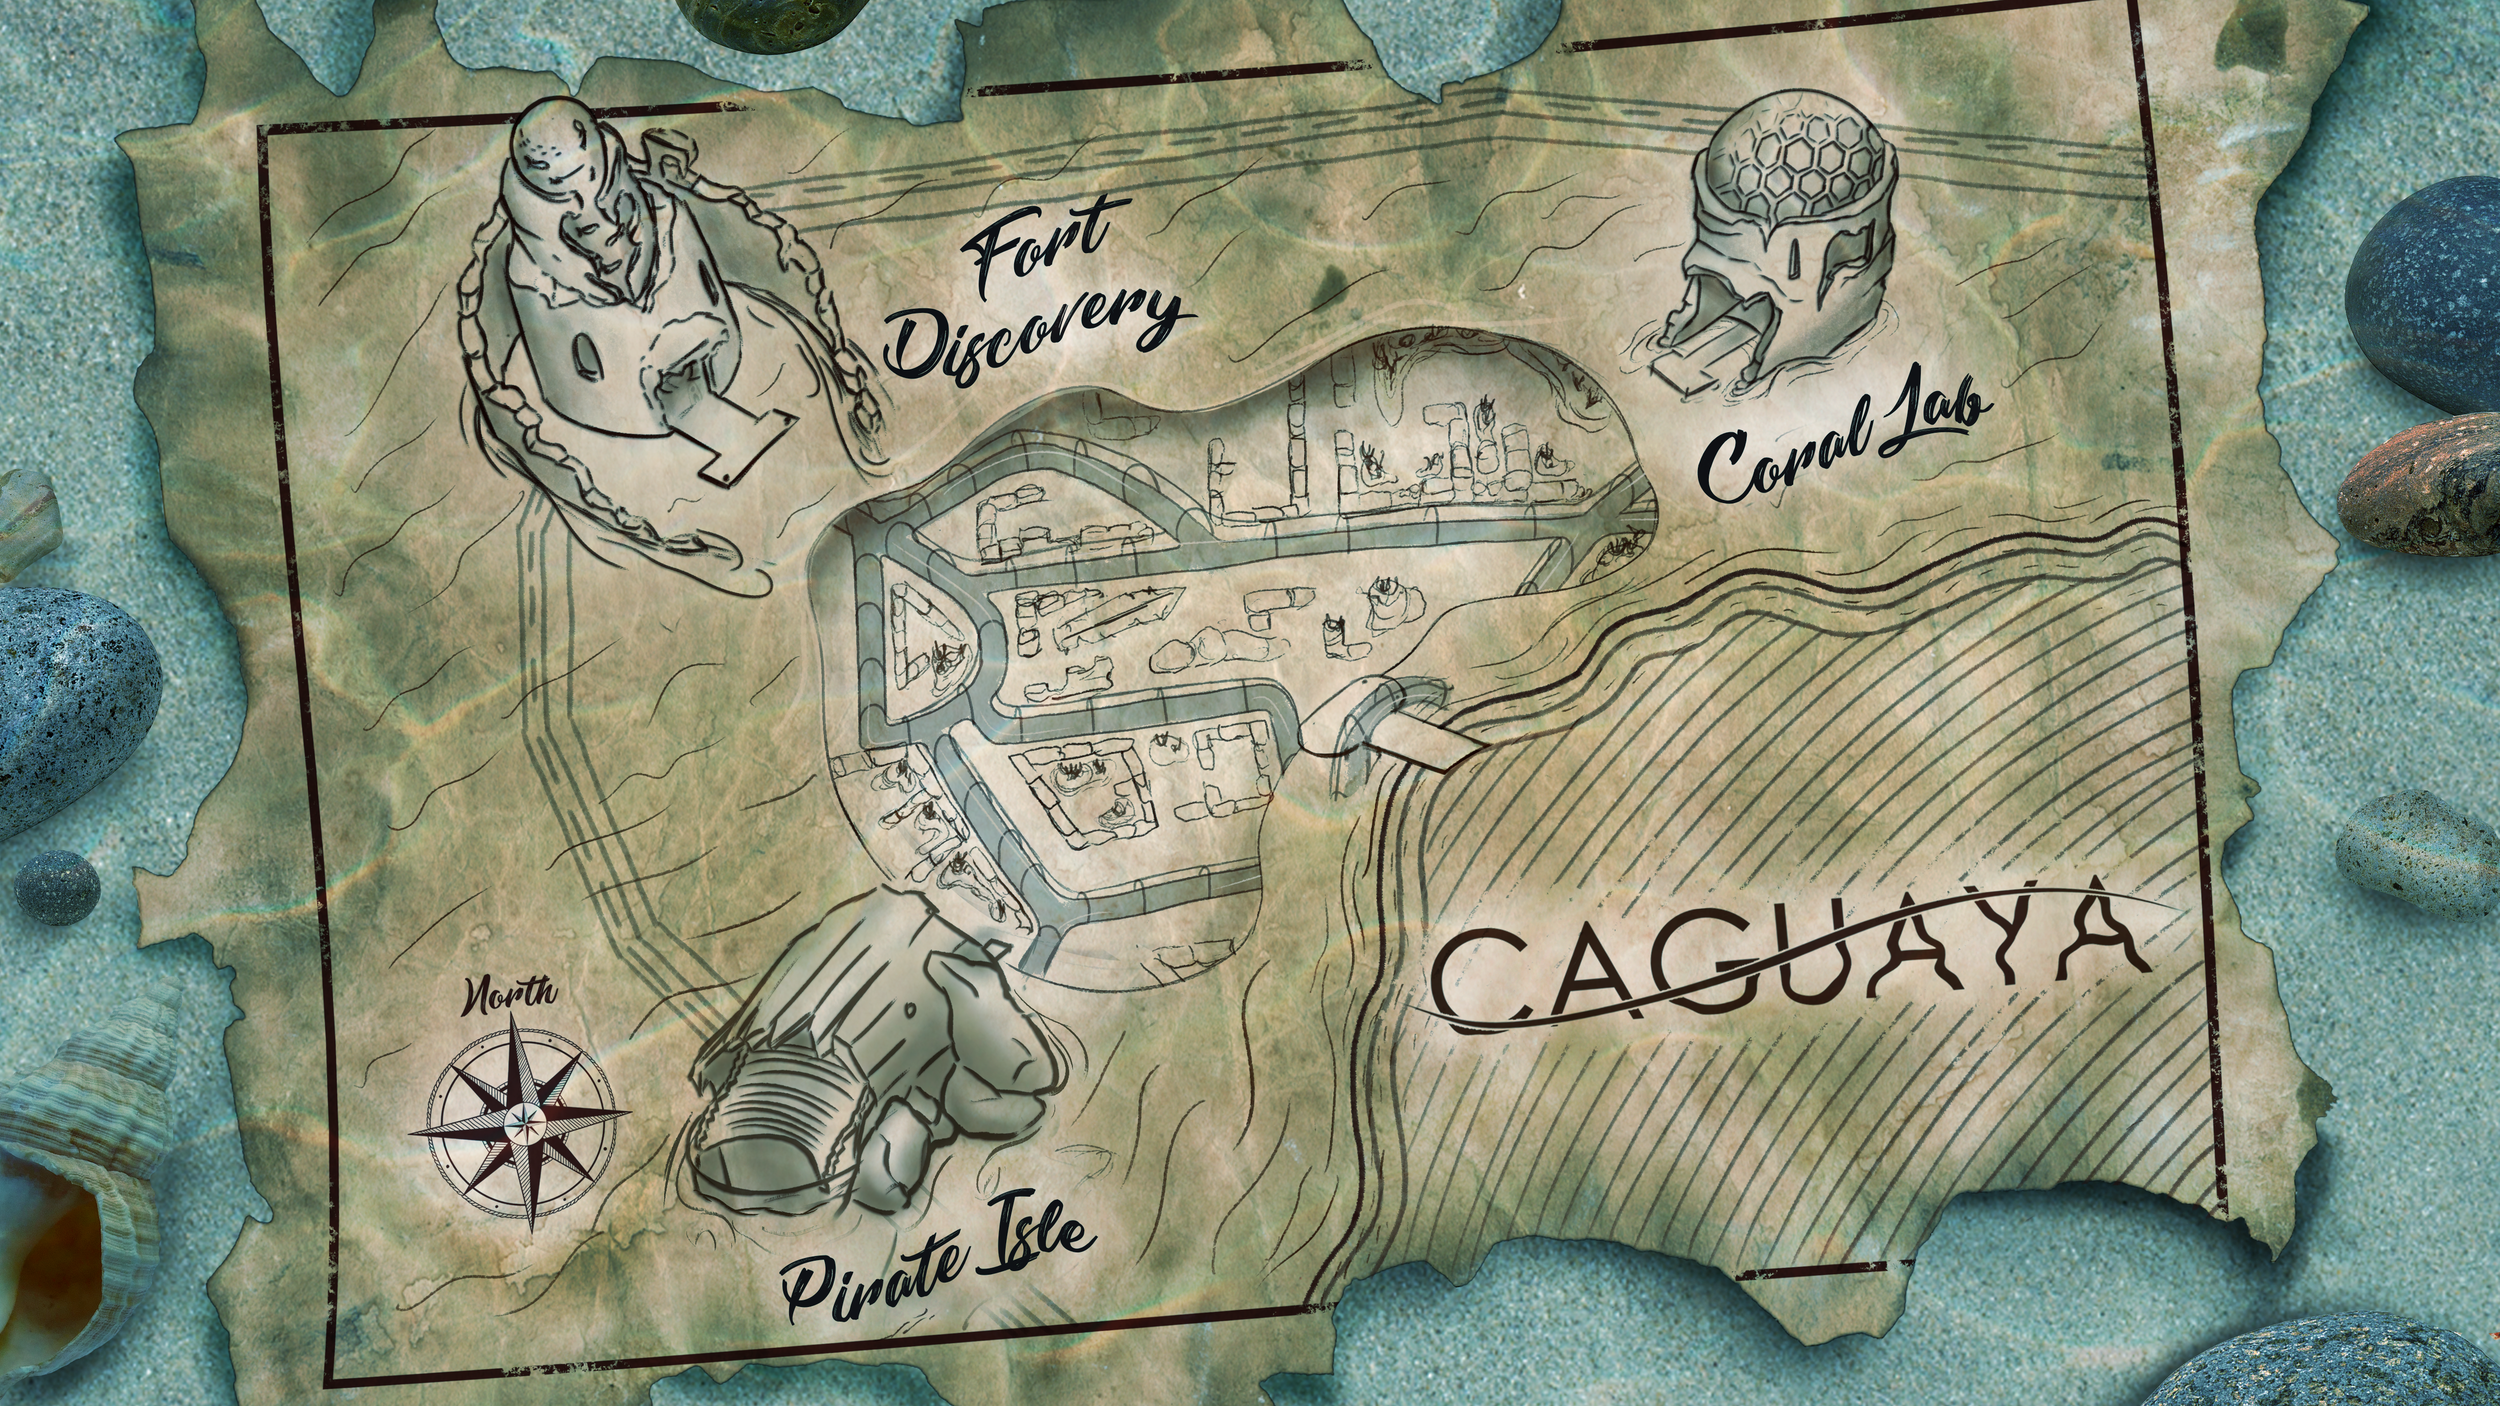 Themed map of Caguaya from our final presentation. © Disney